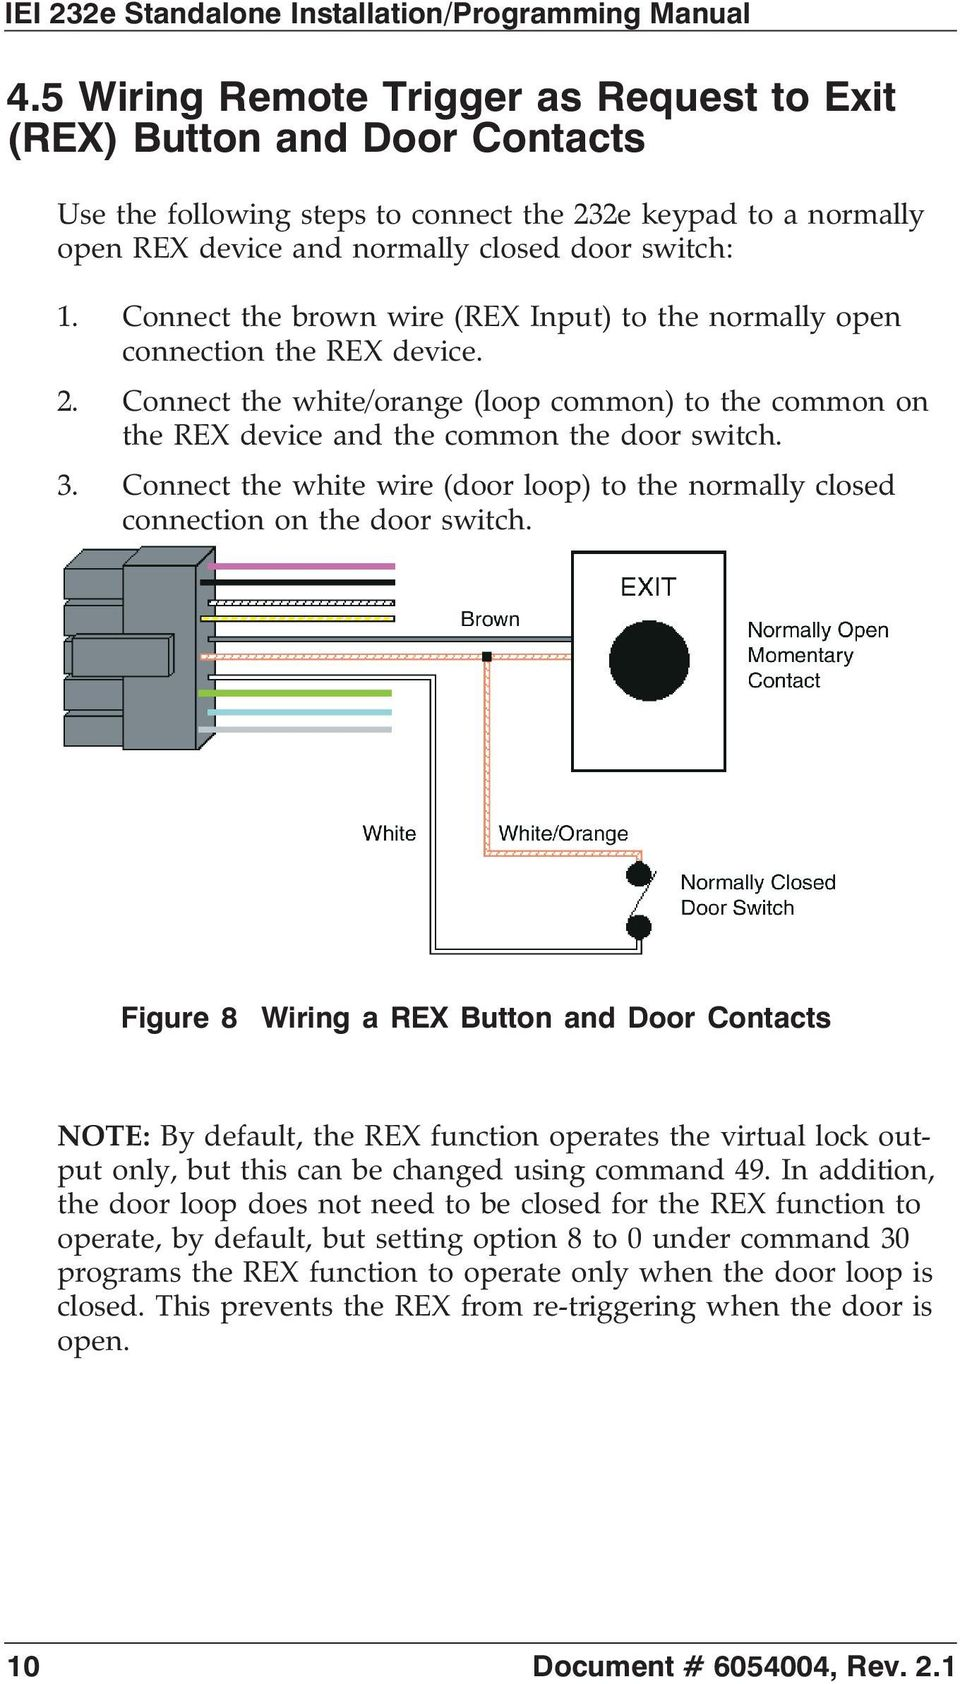 hight resolution of connect the white wire door loop to the normally closed connection on the door